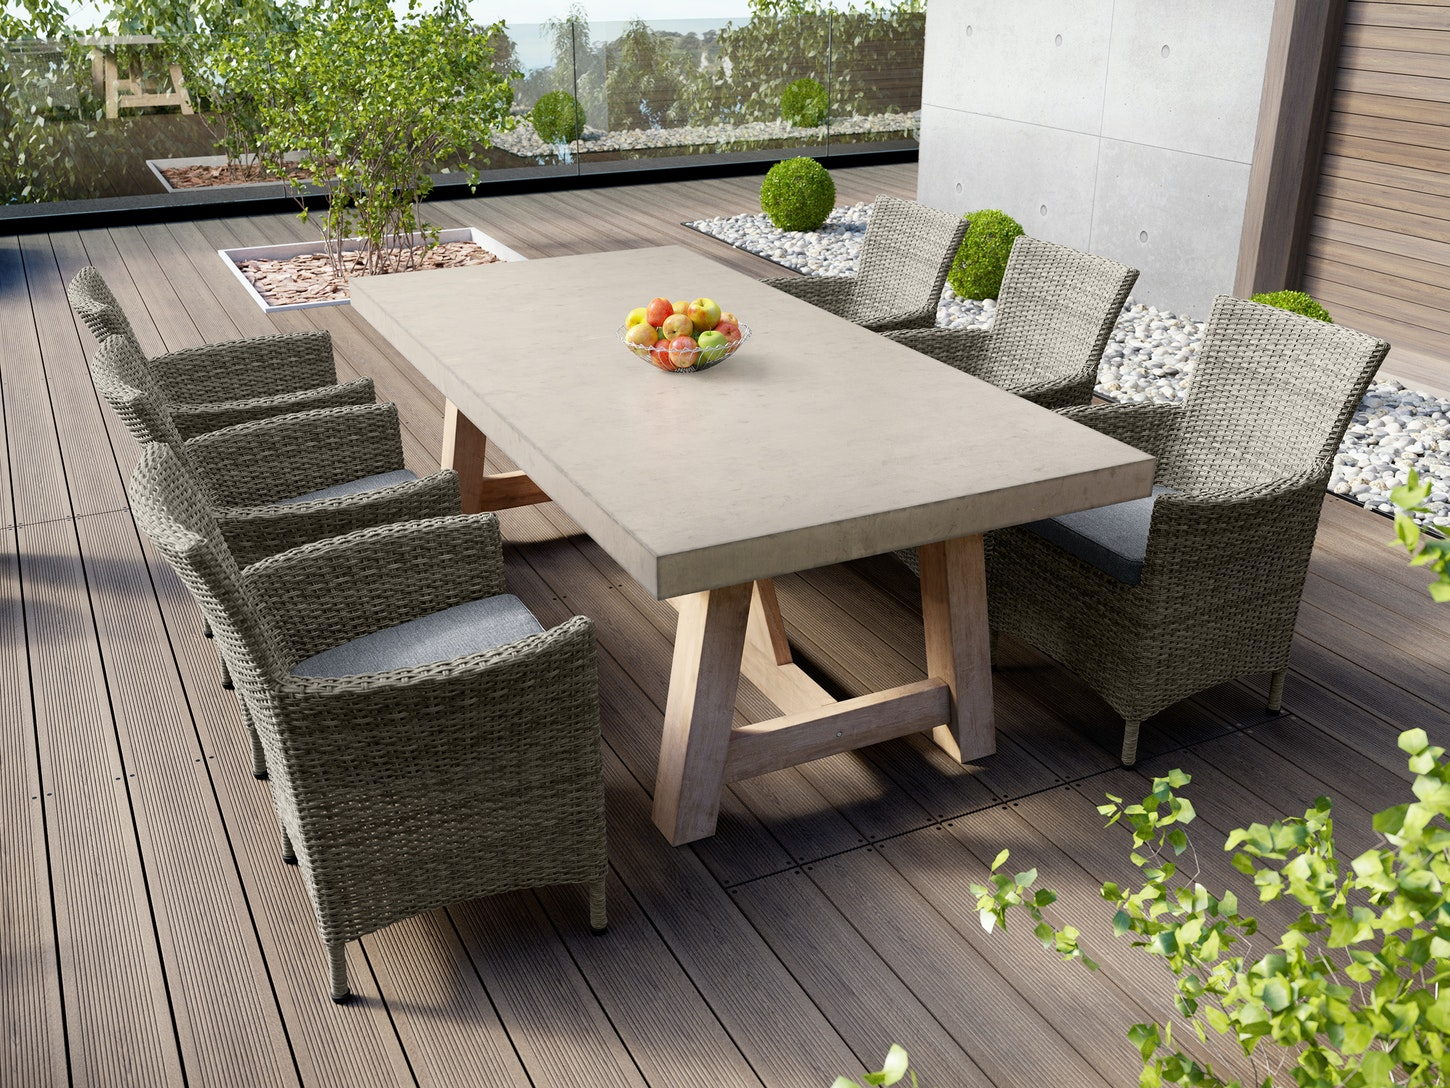 Tate Concrete Outdoor Dining Table With Elba Rattan Chairs Sets Furniture Home Living Trade Tested